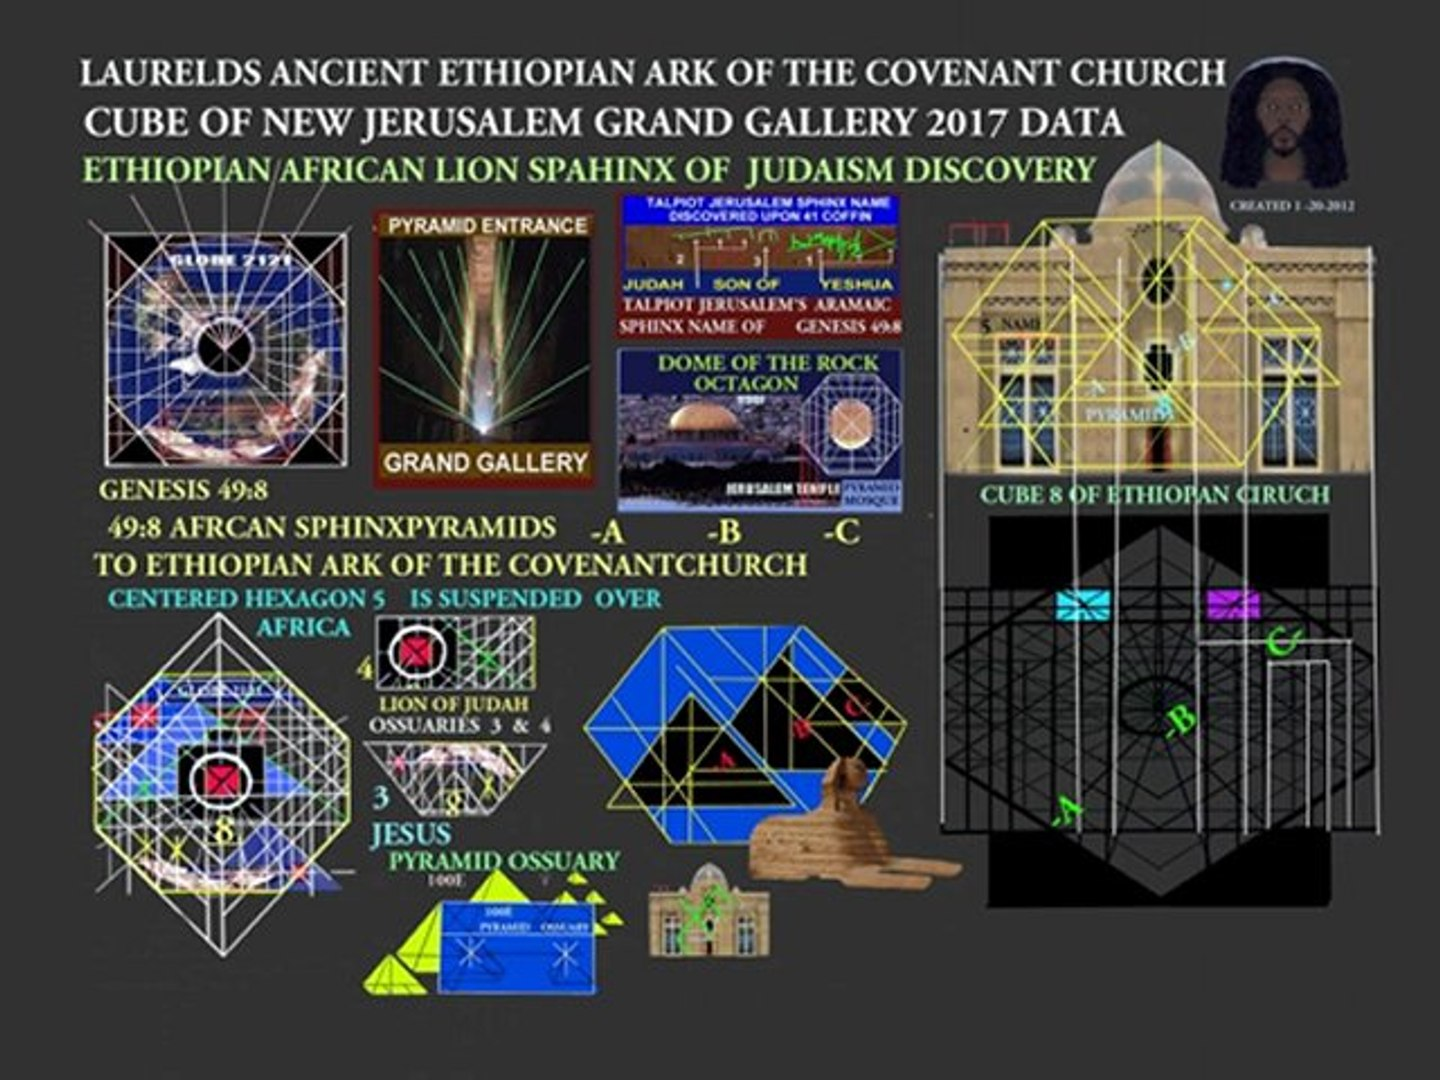 AFRICAN SPHINX ETHIOPIAN CUBE OF NEW JERUSALEM PYRAMIDS  -A -B -C DISCOVERY